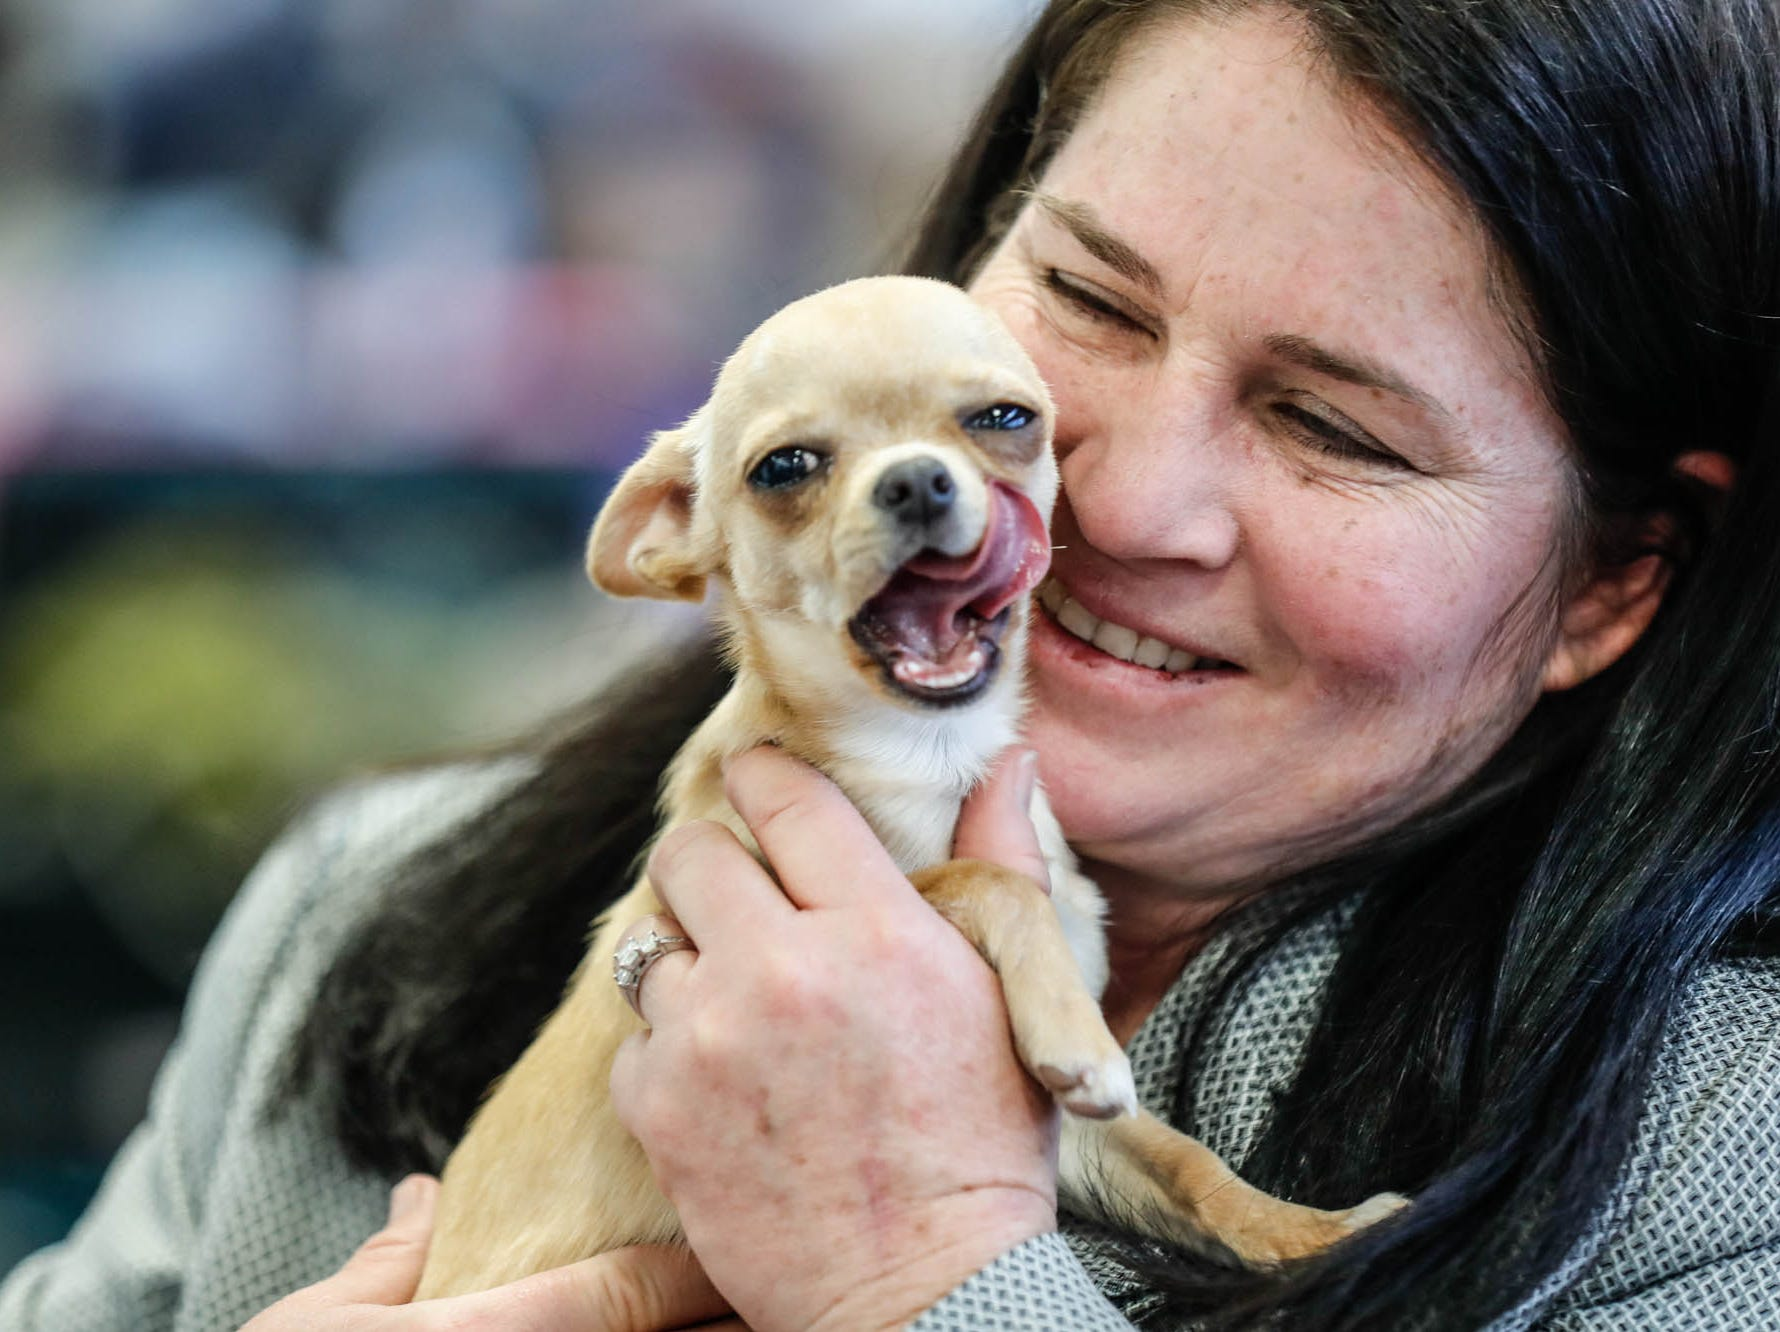 Eva, a Chihuahua puppy, is held by handler Debbie Coggin during the Indy Winter Classic All Breed Dog Show held at the Indiana State Fairgrounds on Sunday, Feb. 10, 2019.